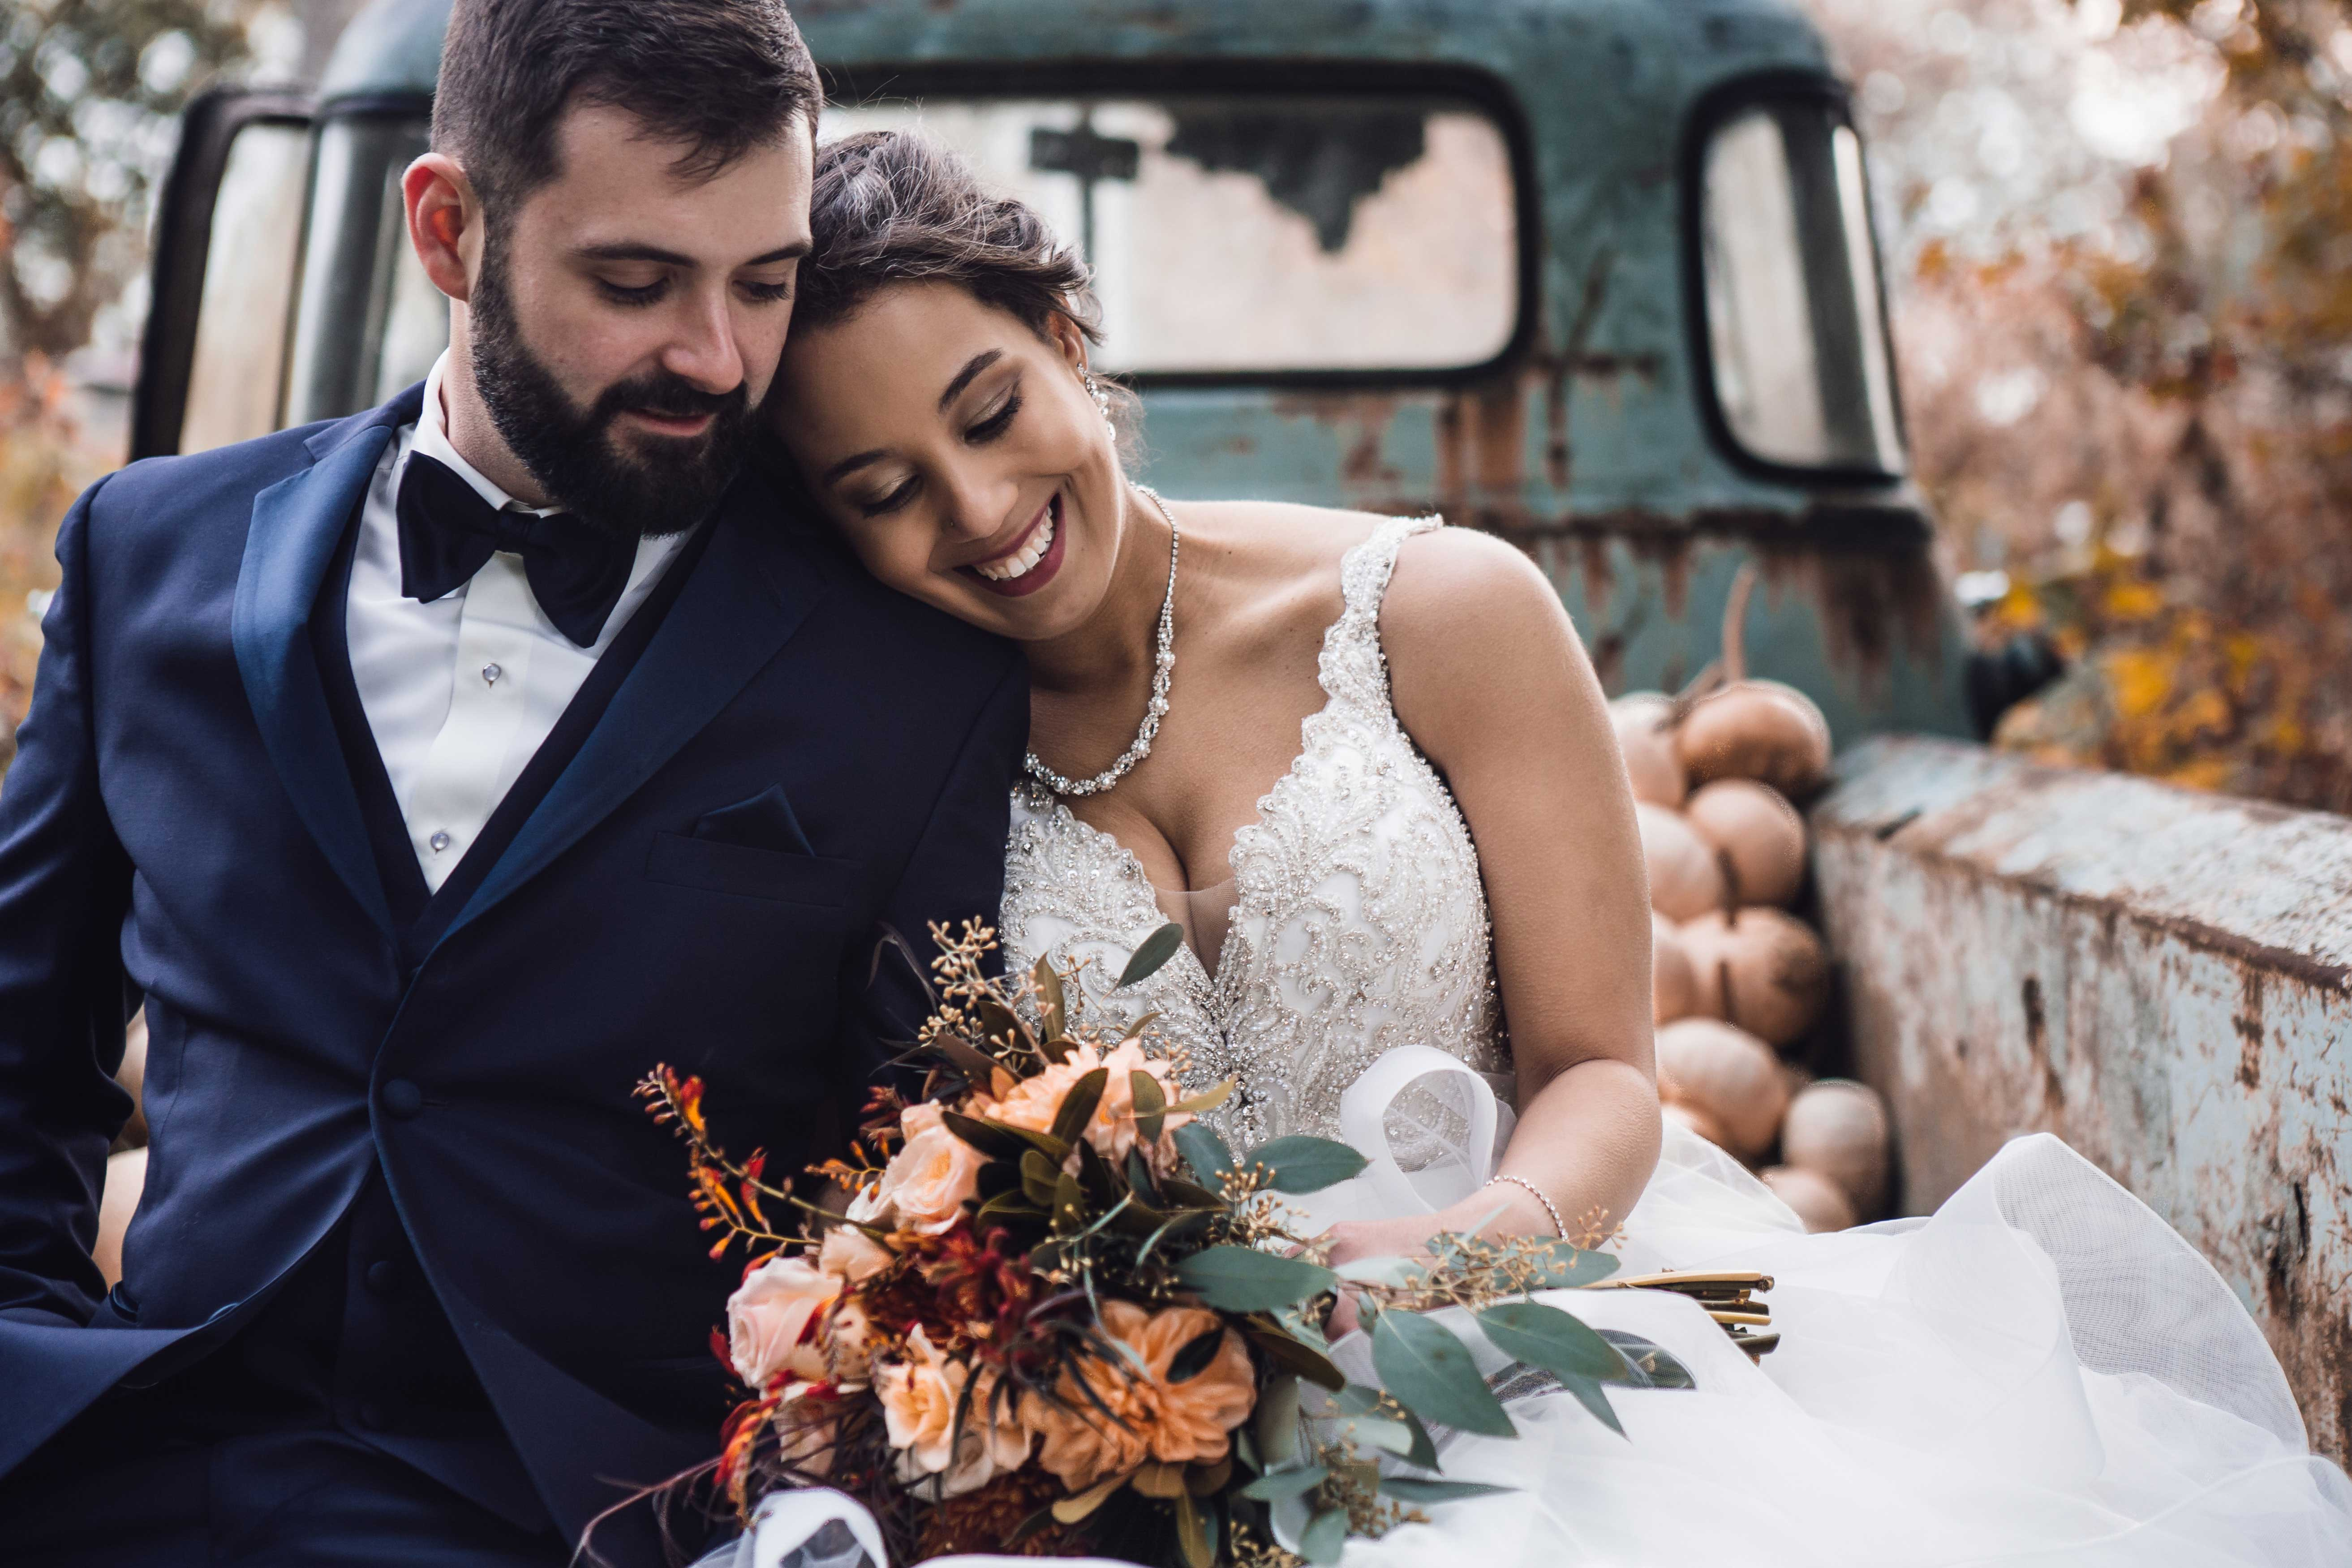 after-wedding-checklist-what-to-do-after-wedding-5